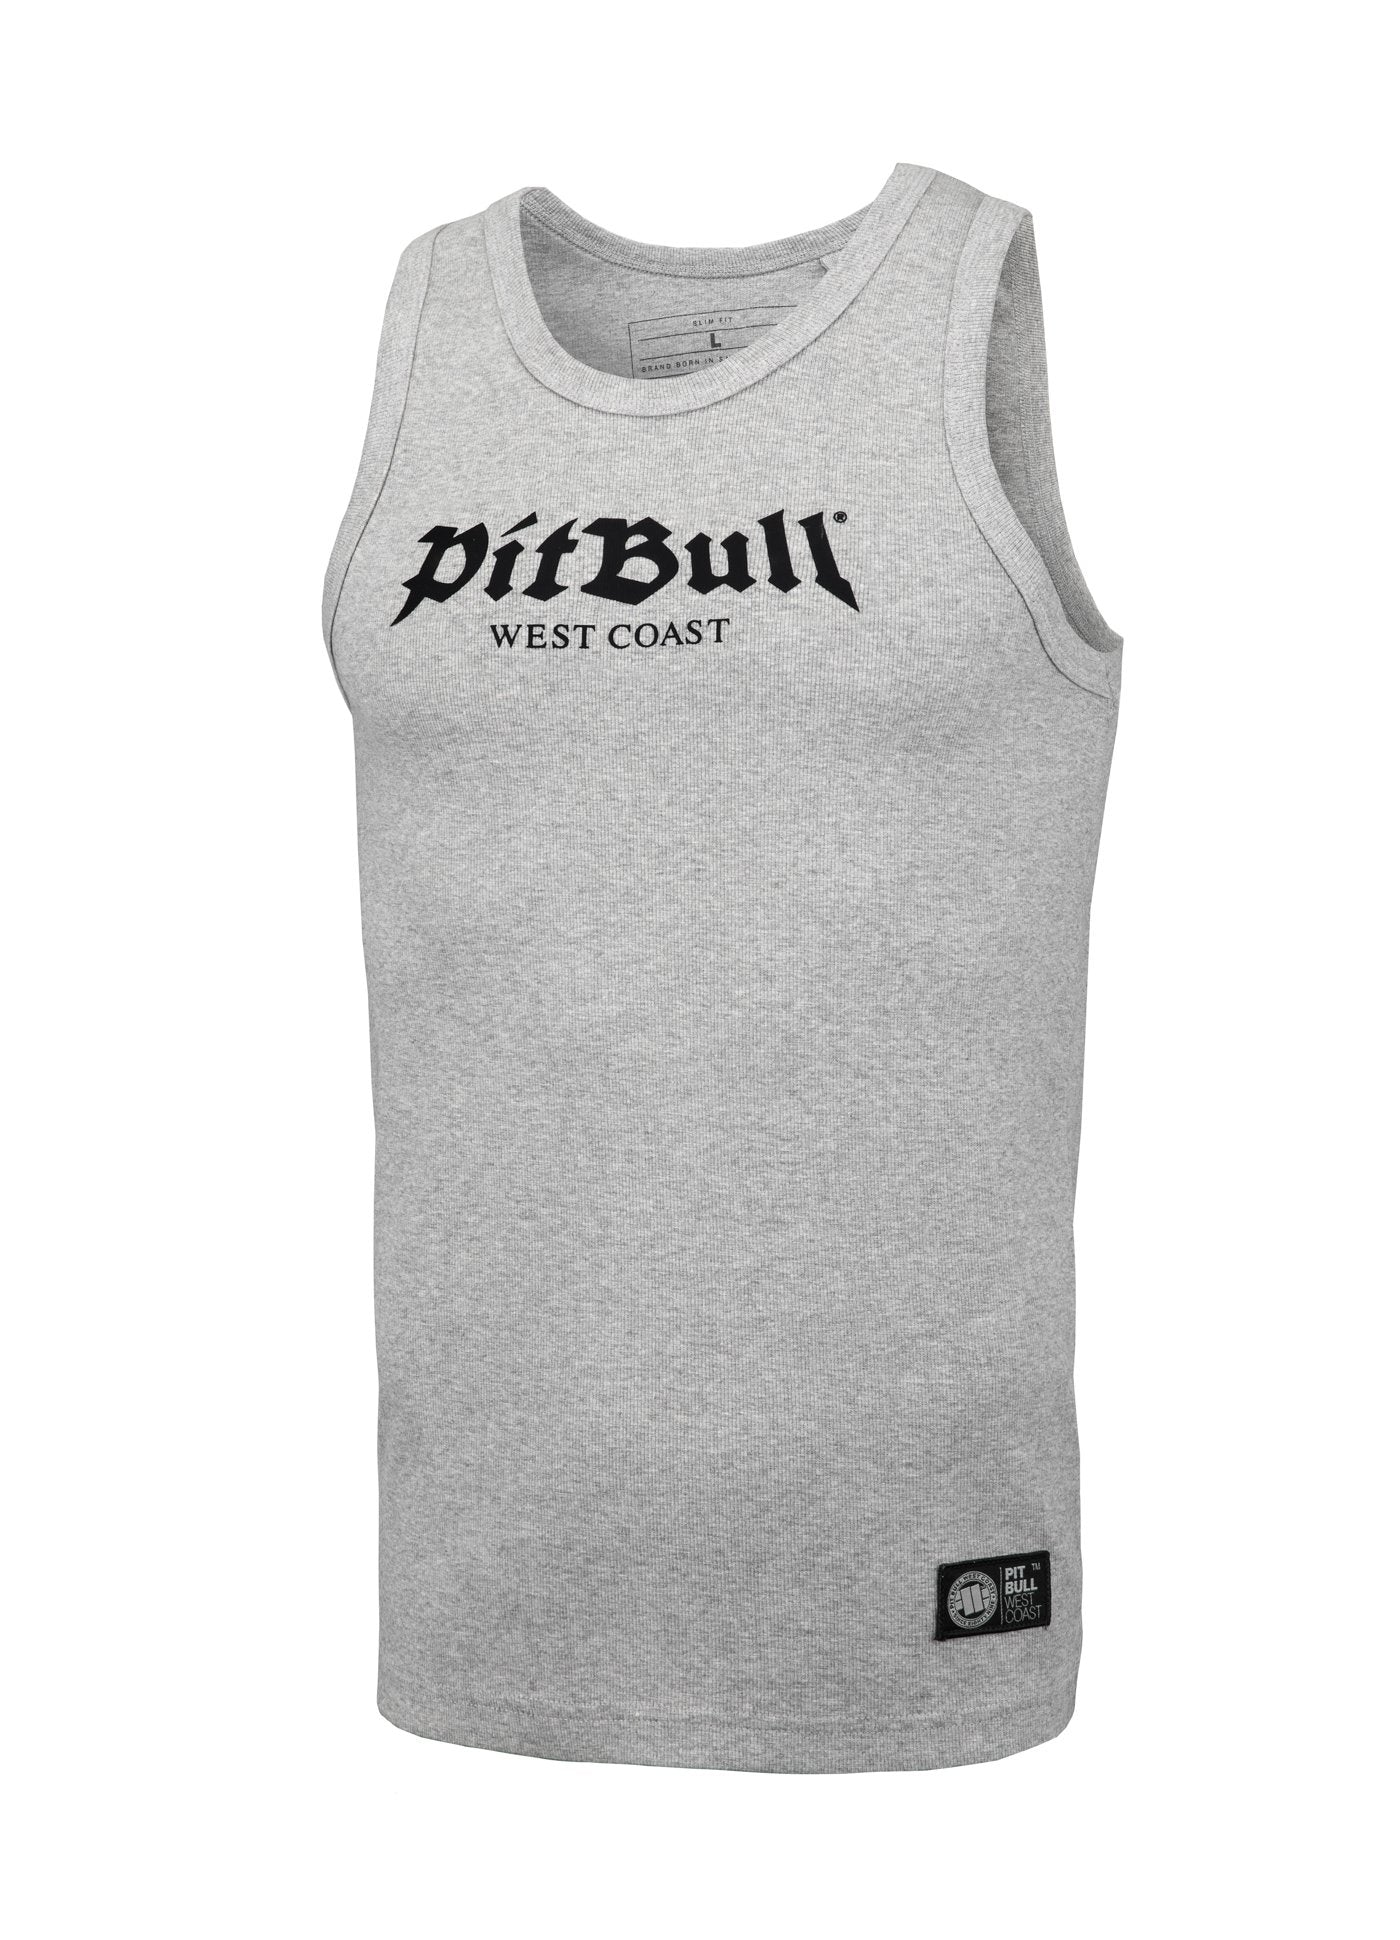 Rib Tank Top Old Logo Grey MLG - Pitbull West Coast U.S.A.